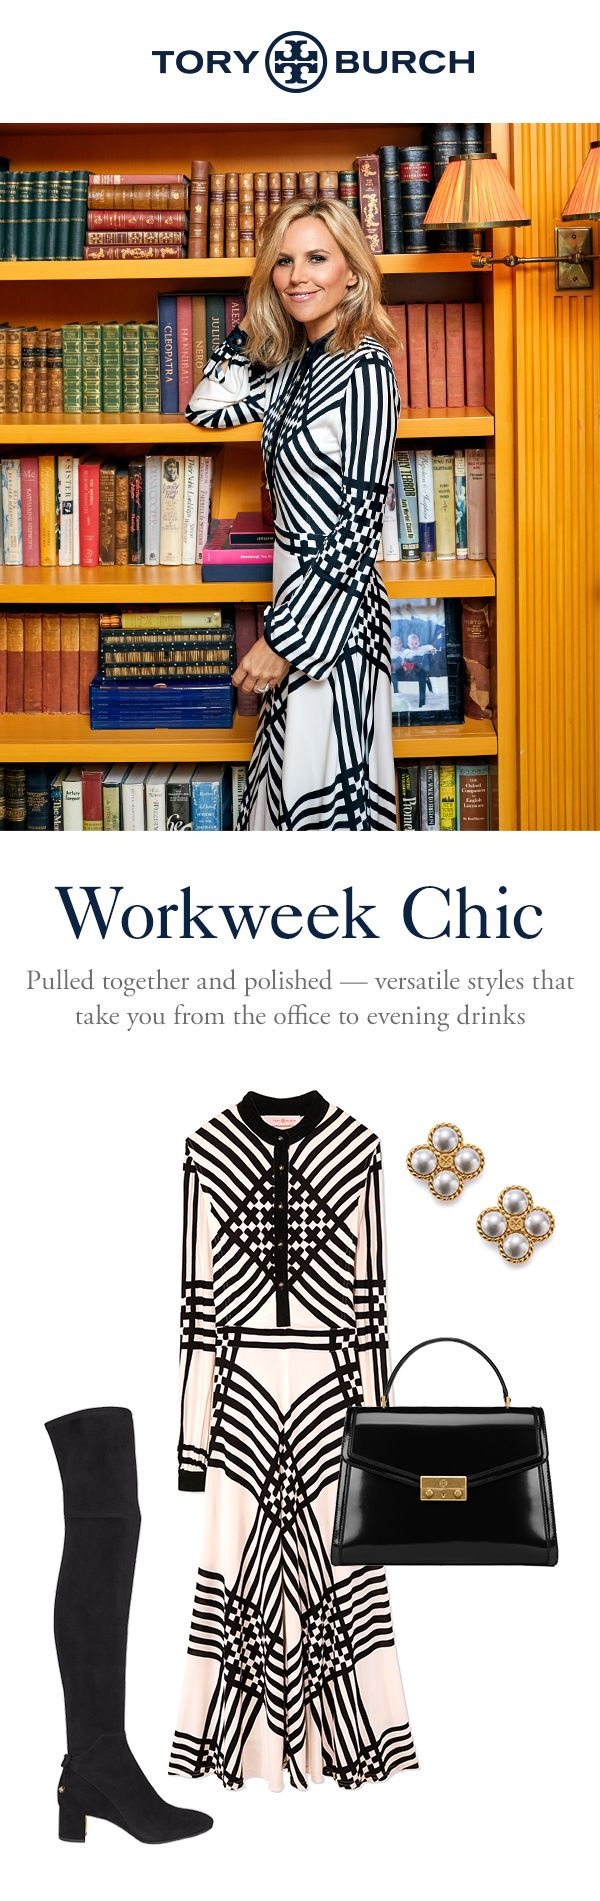 Tory Burch Holiday 2017 | Workweek Chic